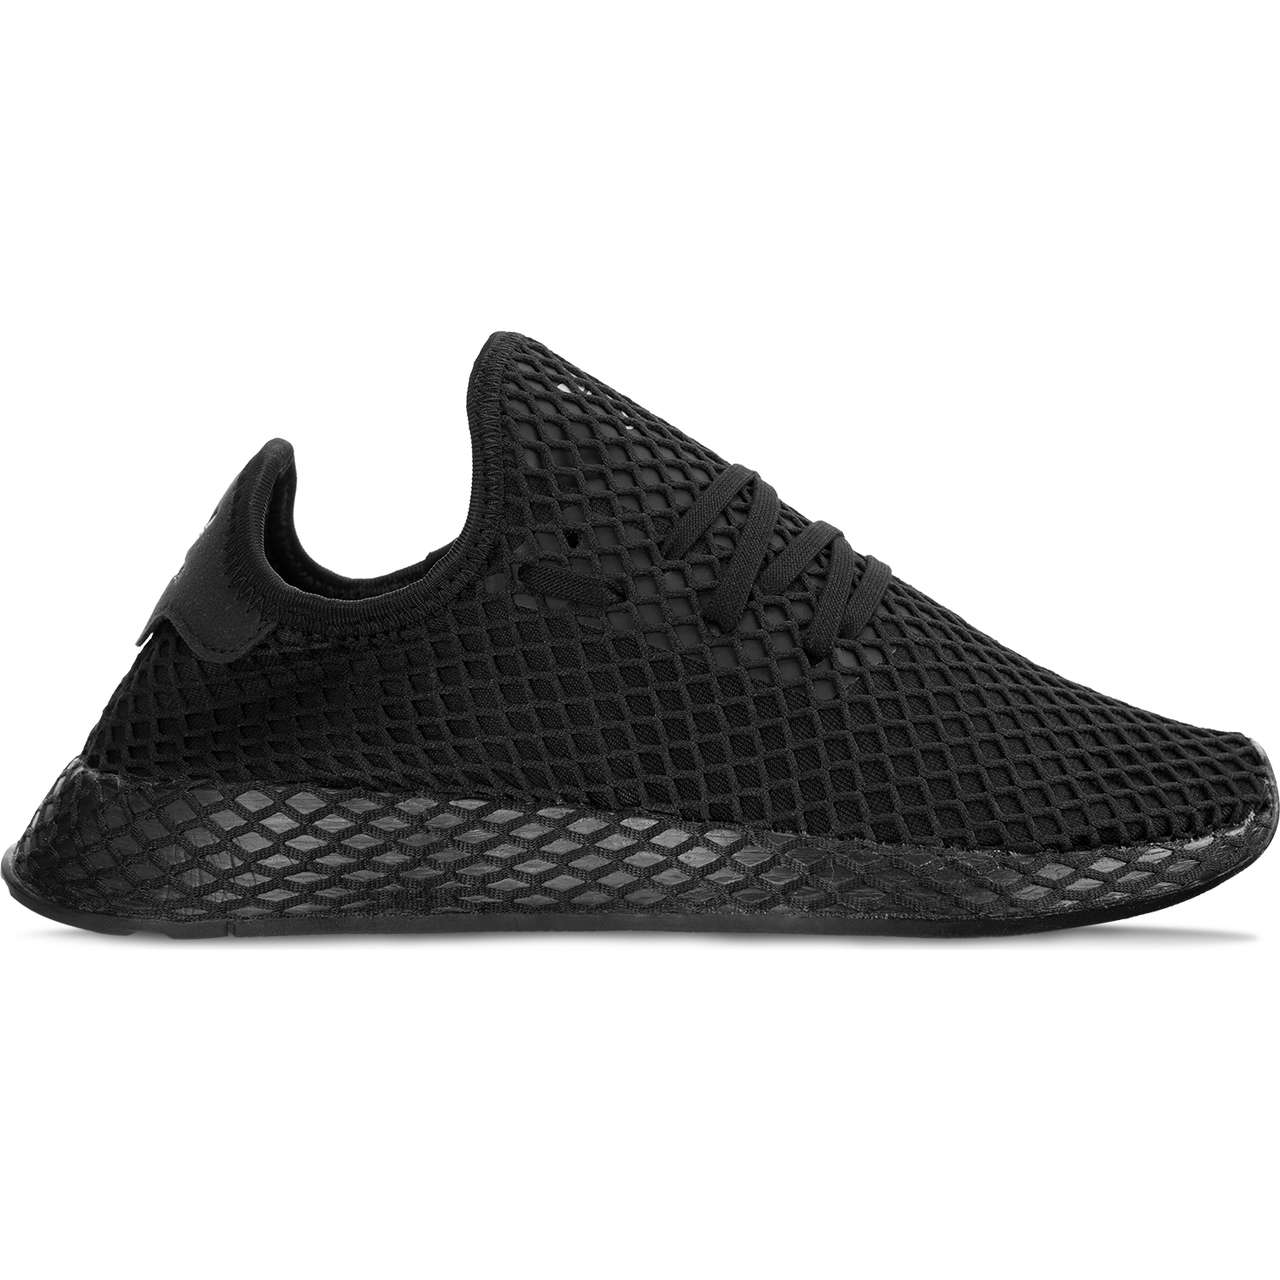 cheaper cde80 4f4e7 Buty adidas brsmallDEERUPT RUNNER J Core BlackCore ...